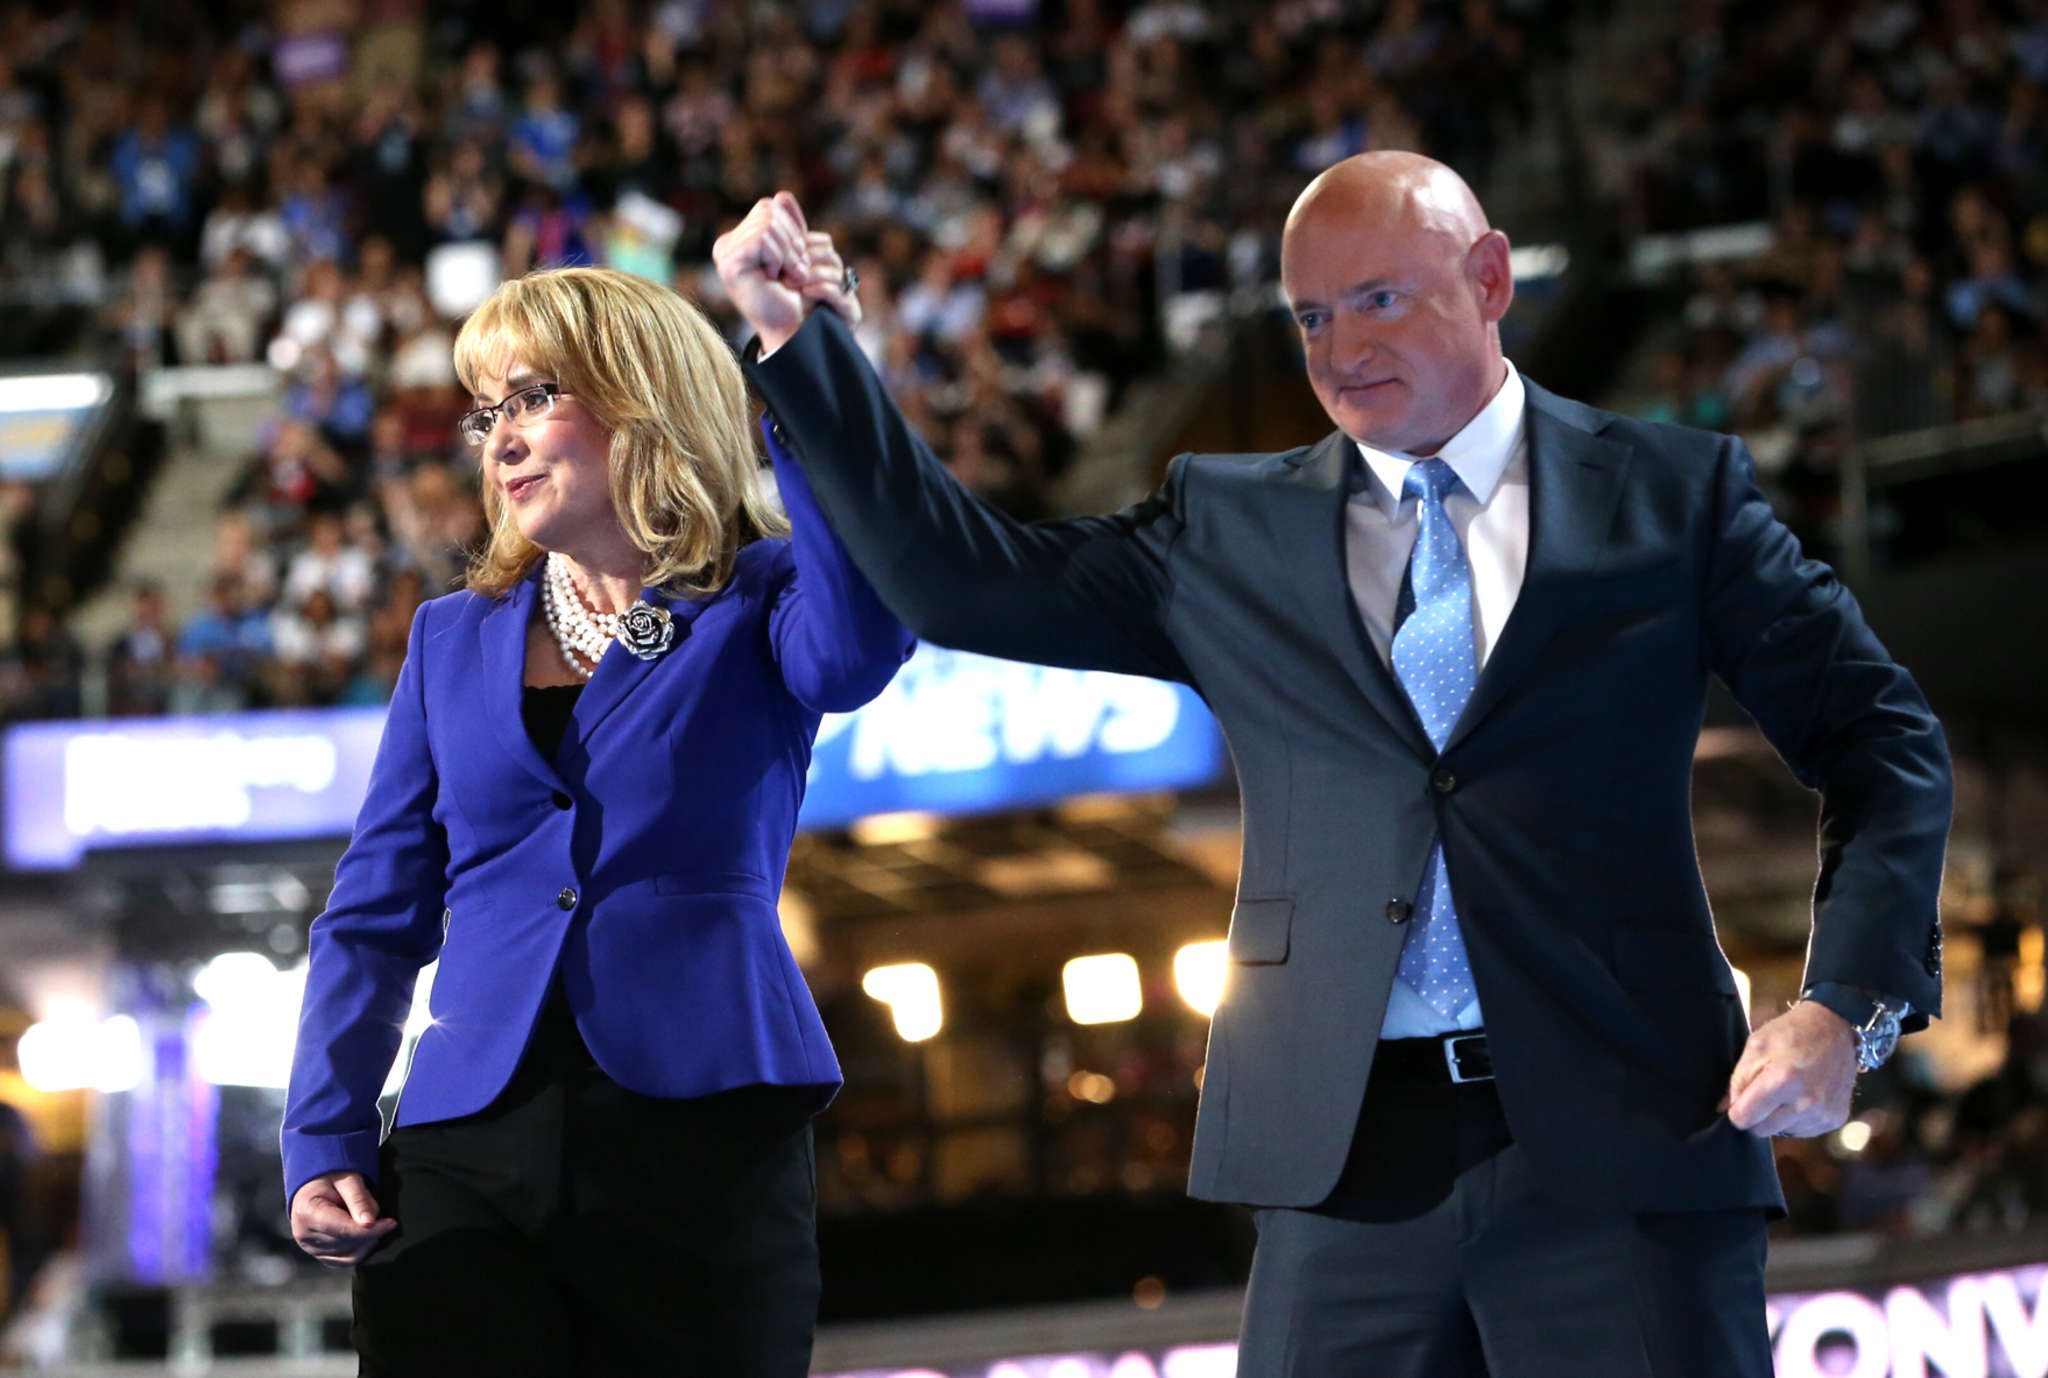 """Former Arizona Rep. Gabrielle Giffords spoke for tighter gun laws and said she hoped to be able to call Hillary Clinton """"Madam President."""""""